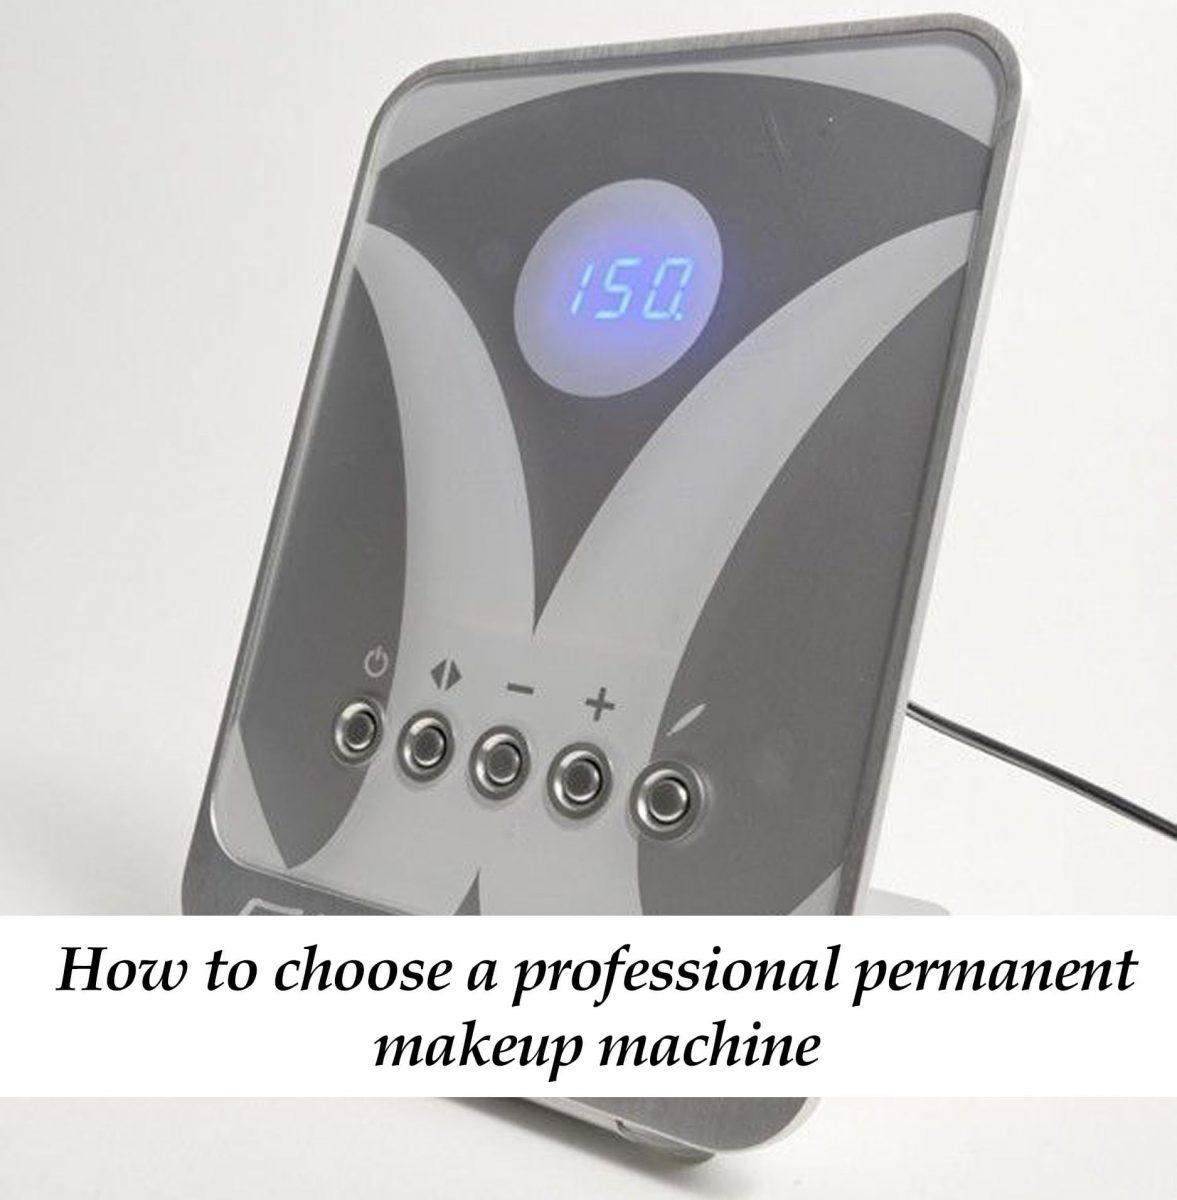 How to choose professional permanent makeup machine